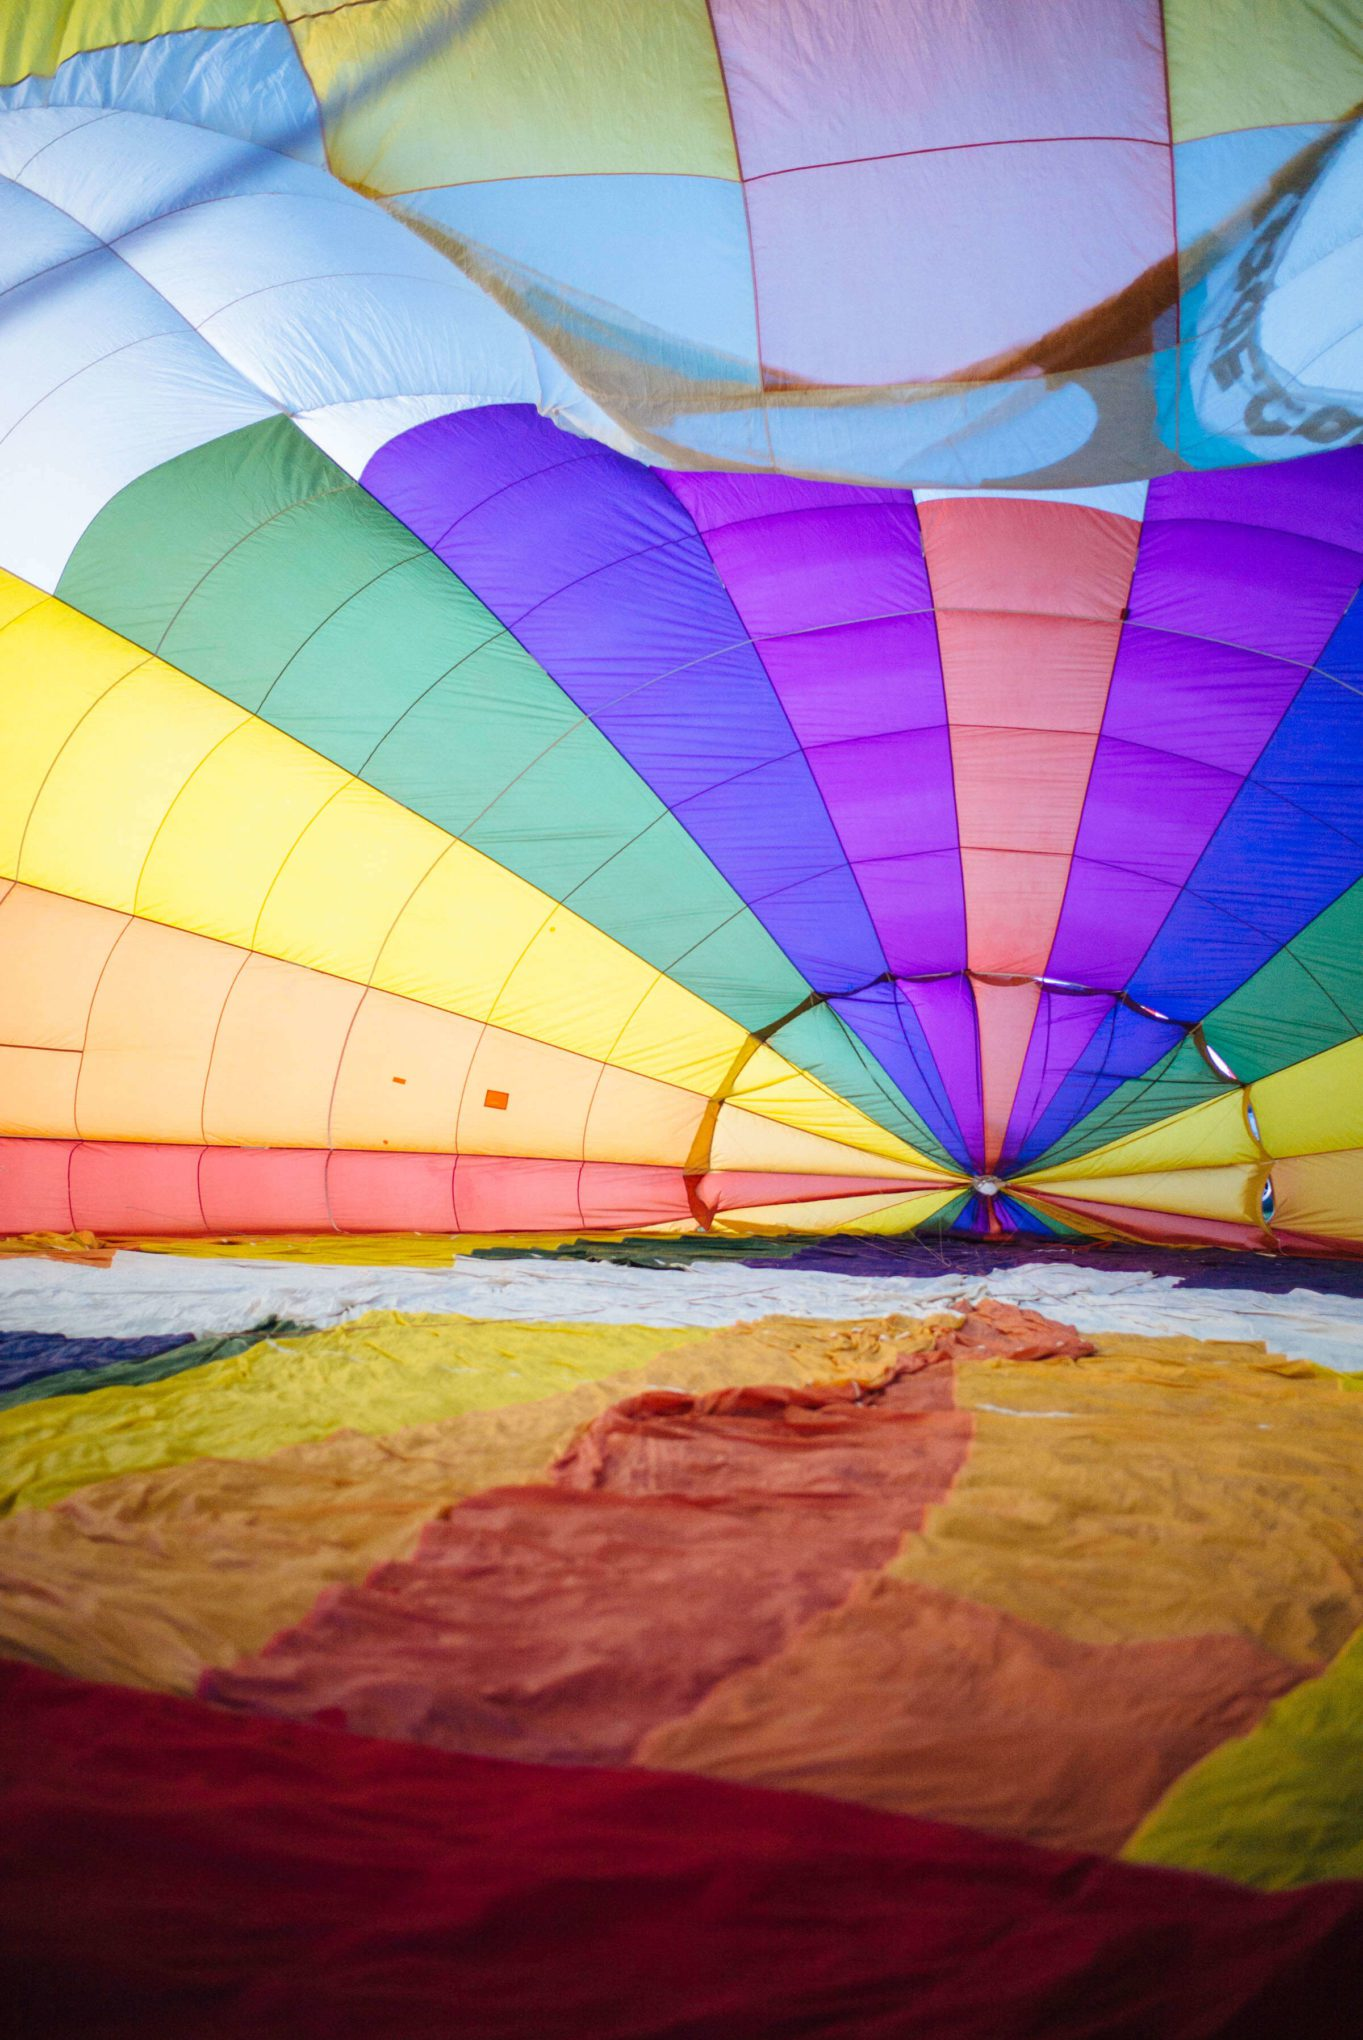 The Taste Edit shares tips from their visit to the Albuquerque International Balloon Fiesta is an American tradition, and the Balloon Glow is one of the most spectacular experiences of the Fiesta.